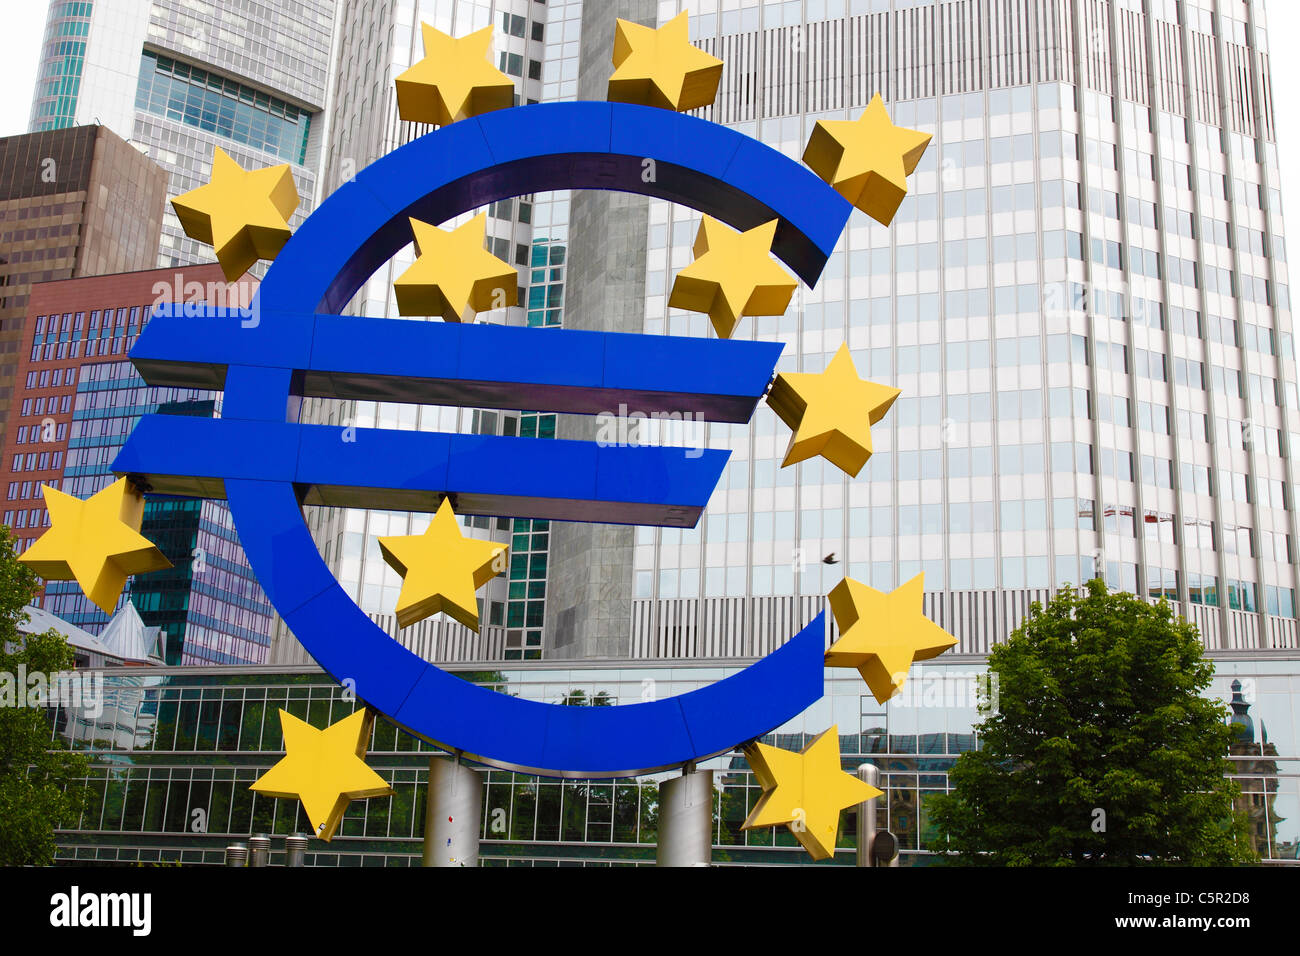 European Central Bank (ECB) with the Euro sign outside in Frankfurt (Main) - Stock Image